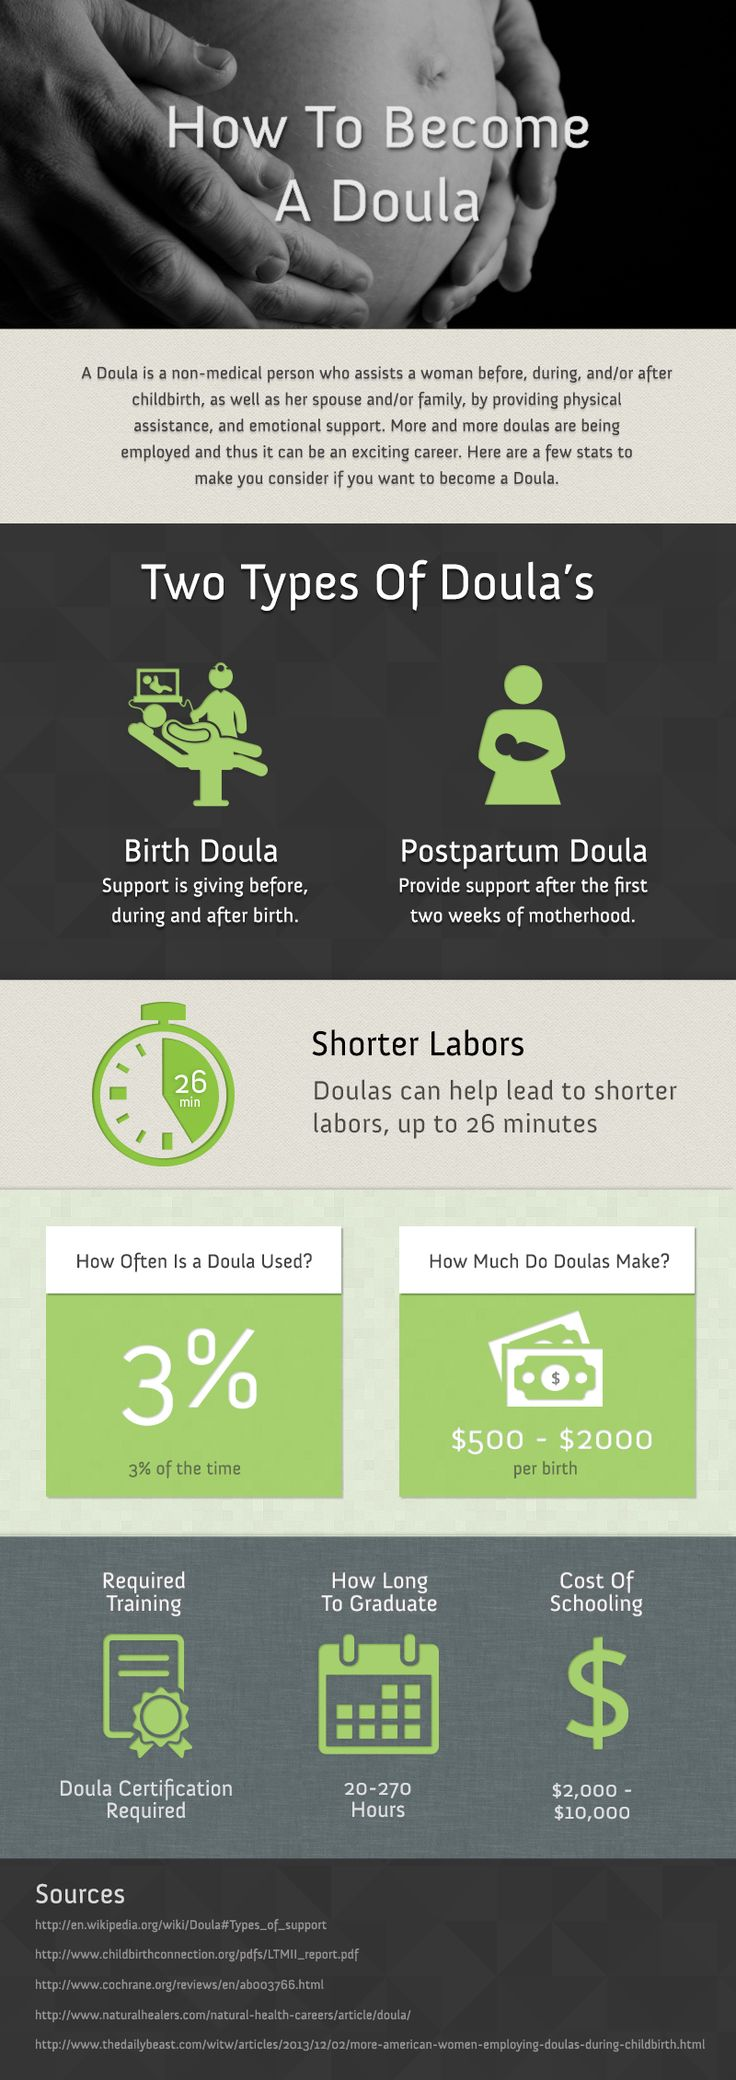 How To Become A Doula #infographic #HowTo #Career #Education